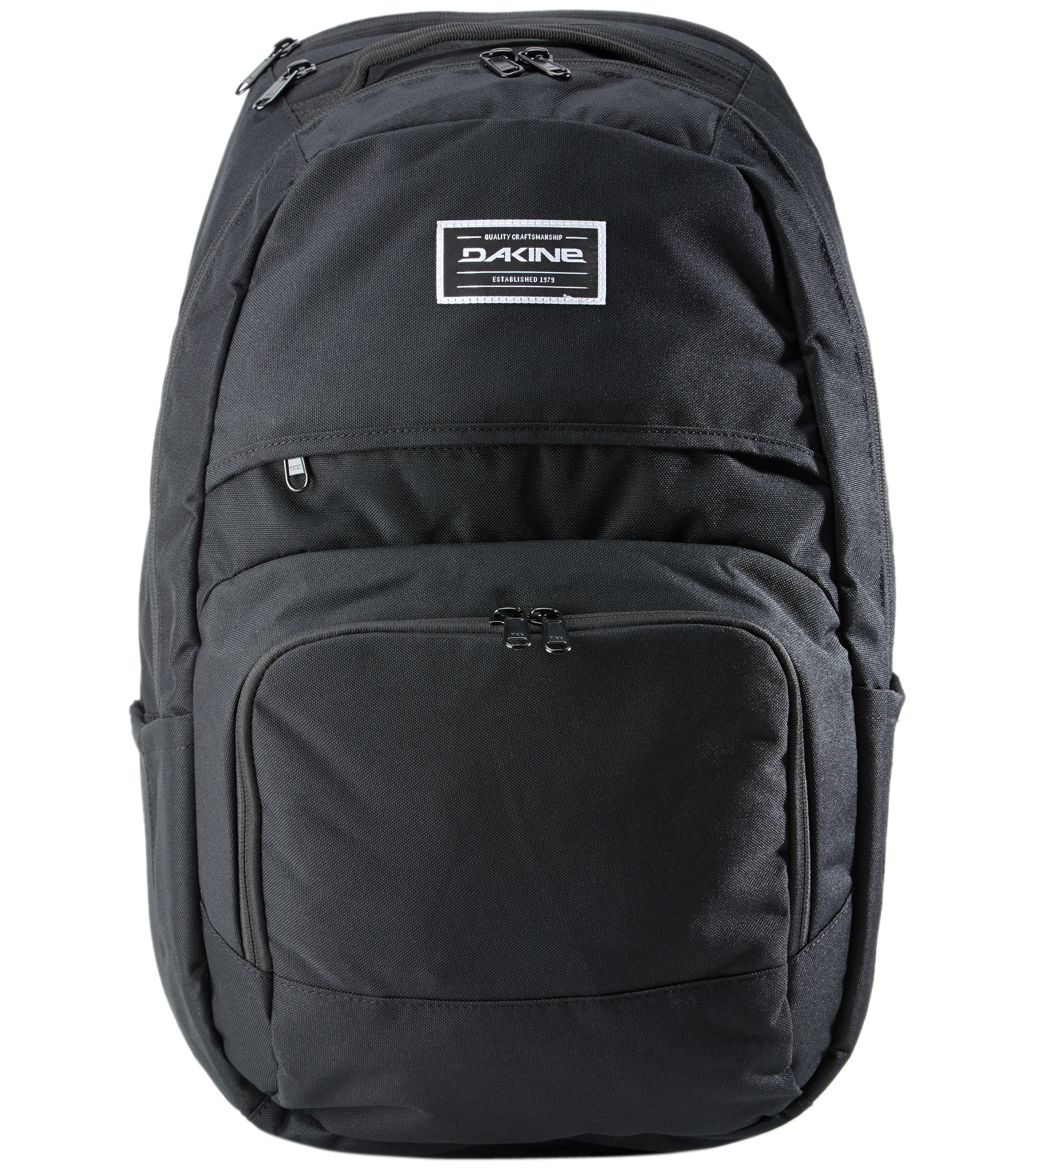 6bf32943503e9 Dakine Campus DLX 33L Backpack at SwimOutlet.com - Free Shipping